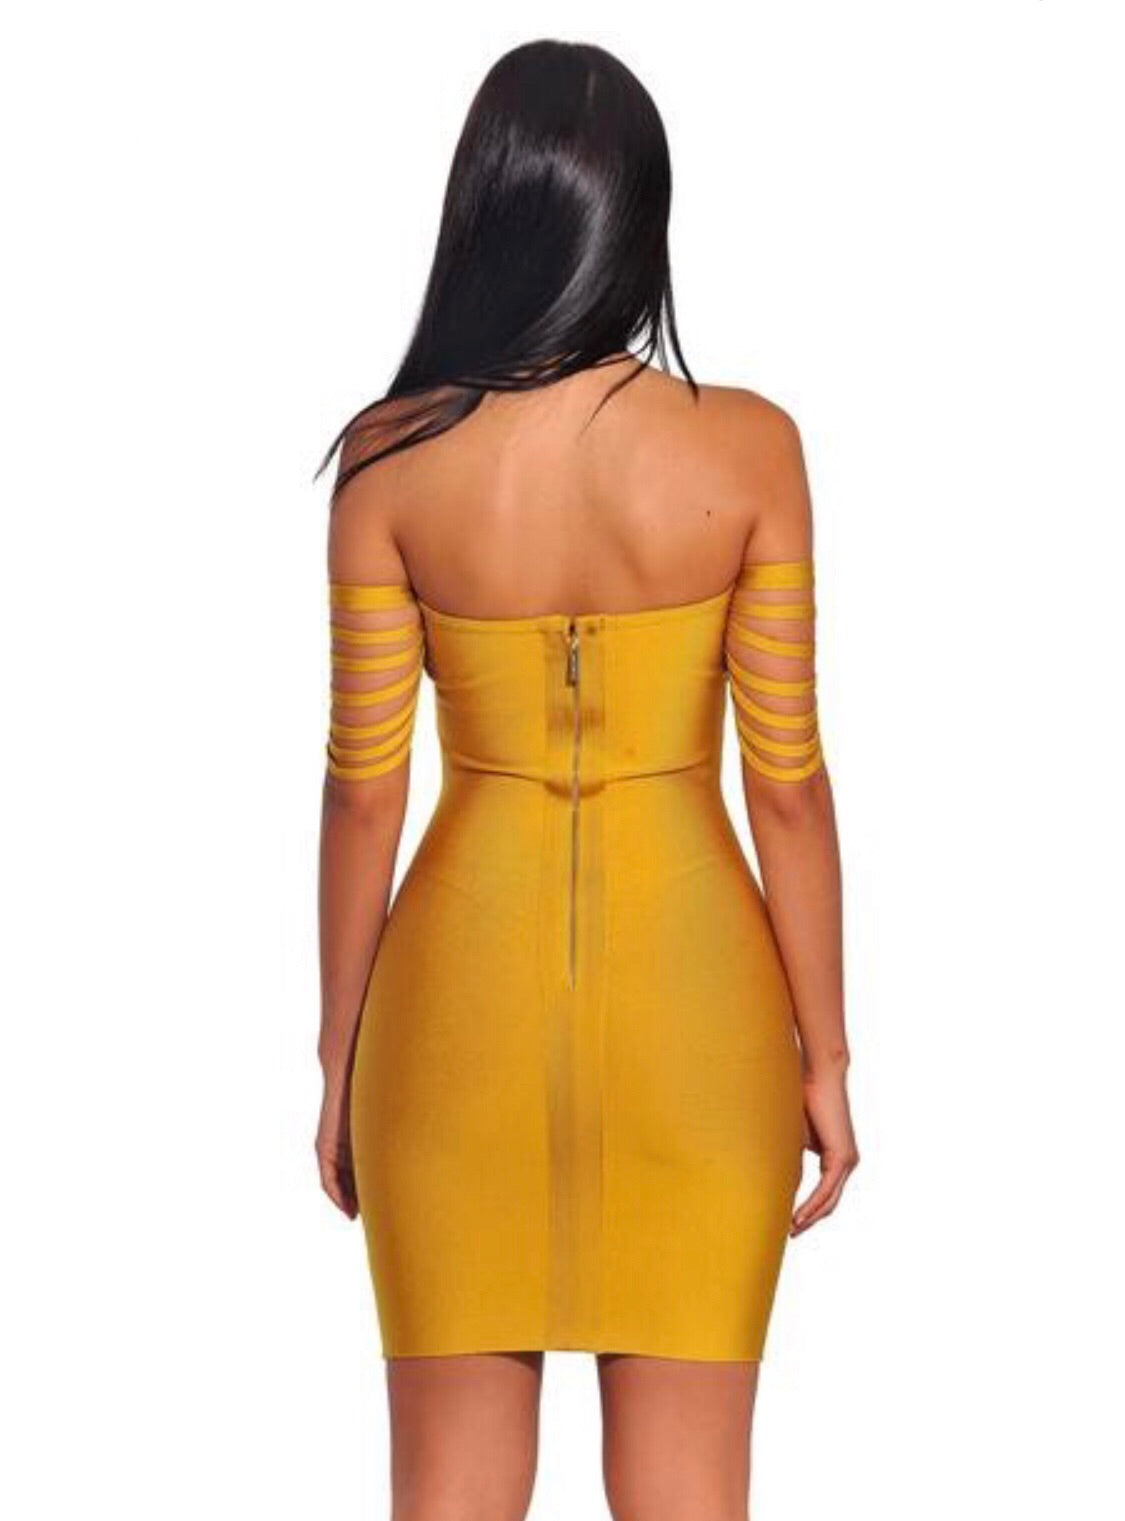 The Honey Bandage Dress